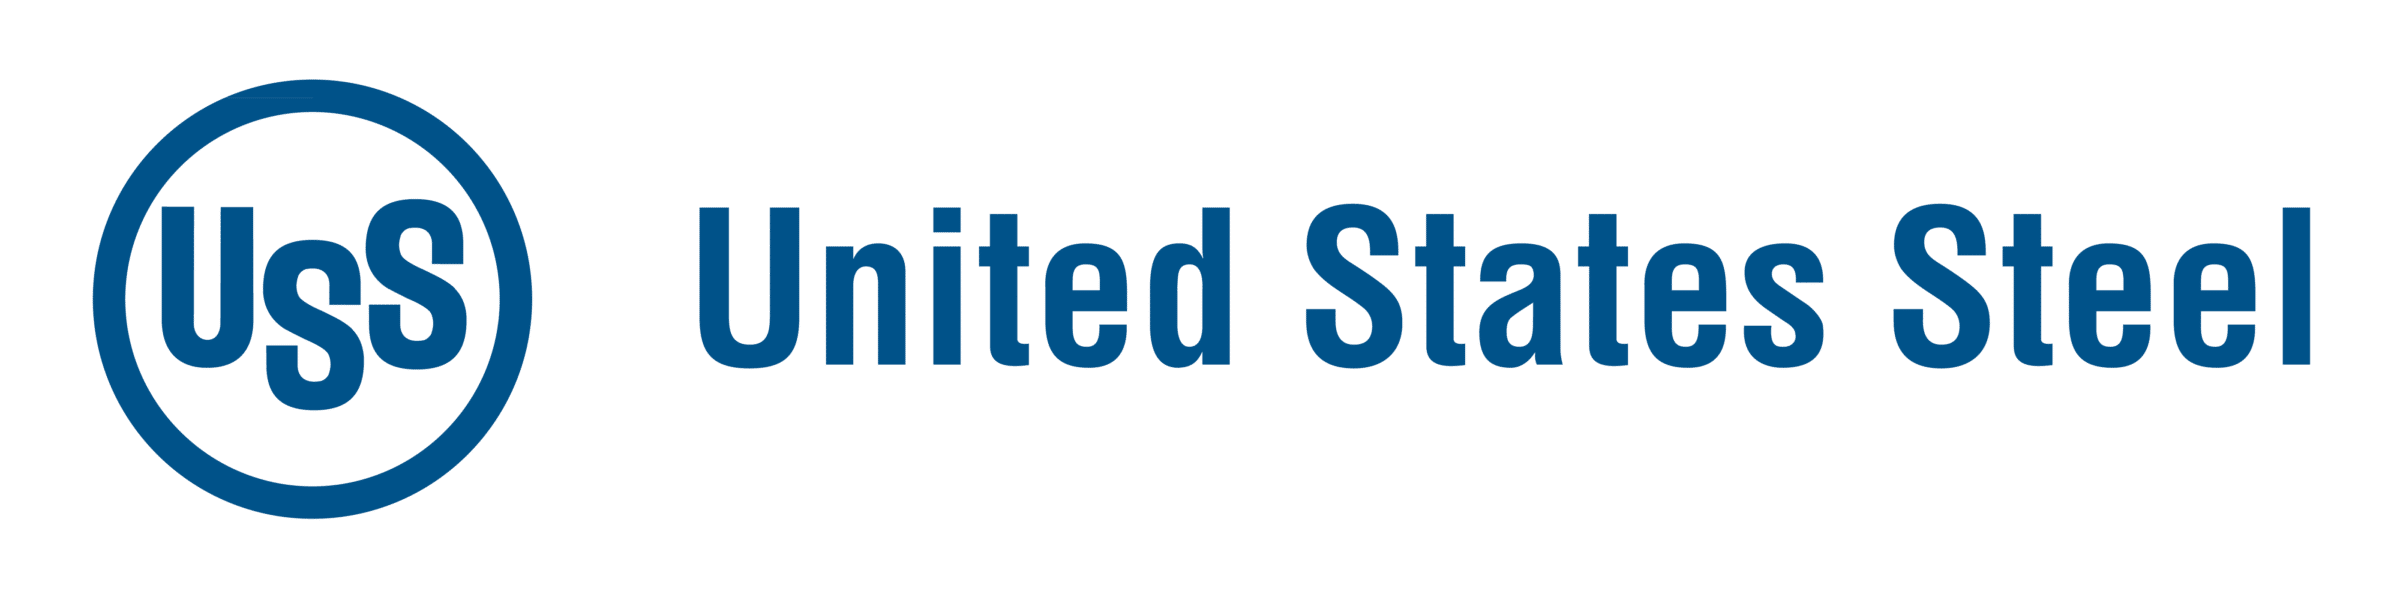 https://i0.wp.com/www.ciresiandmorek.com/wp-content/uploads/2019/09/PNGPIX-COM-United-States-Steel-Logo-PNG-Transparent.png?ssl=1